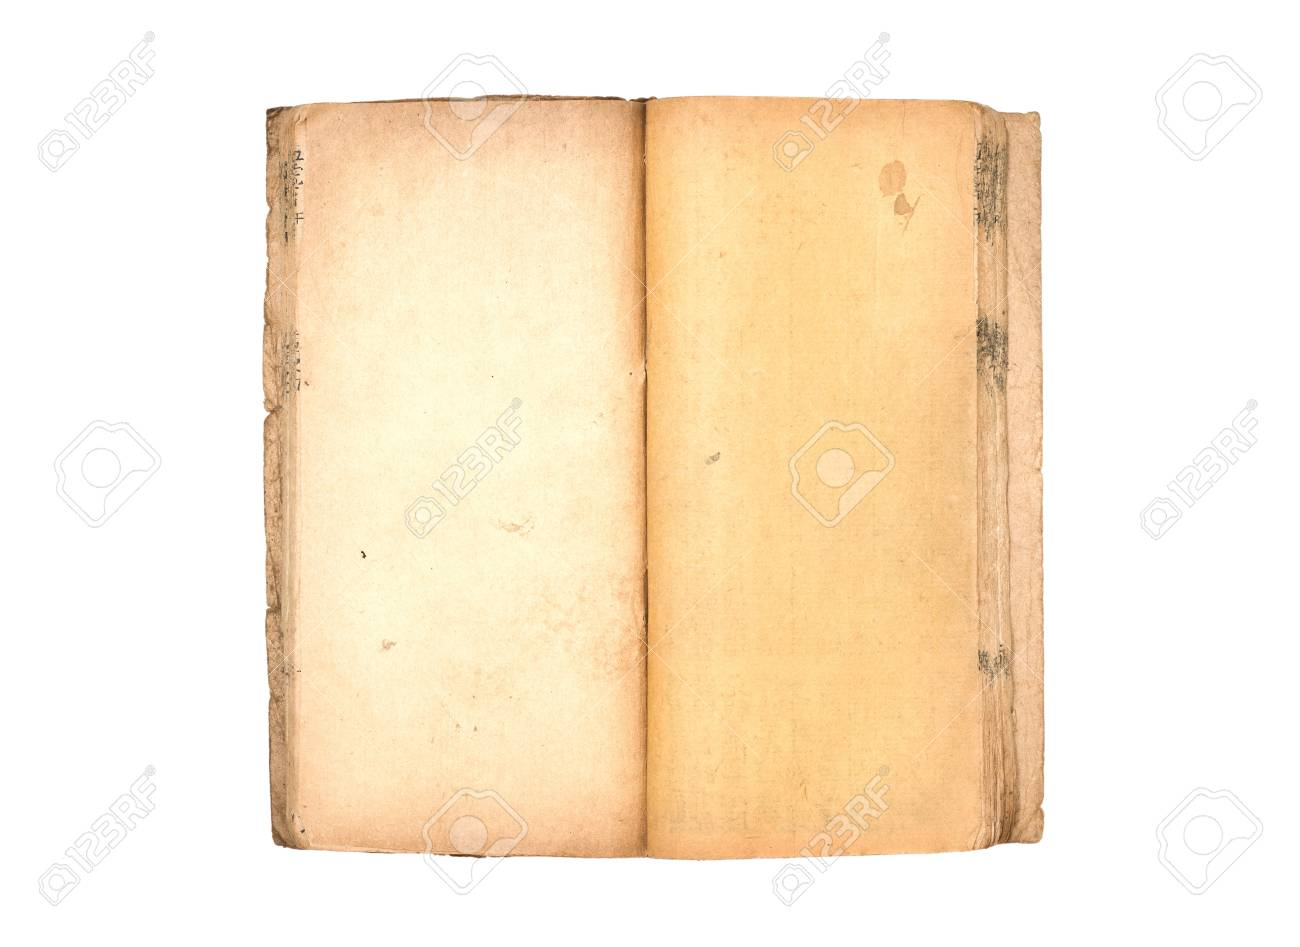 open old book with blank yellow stained pages Isolated on white background Stock Photo - 20239253